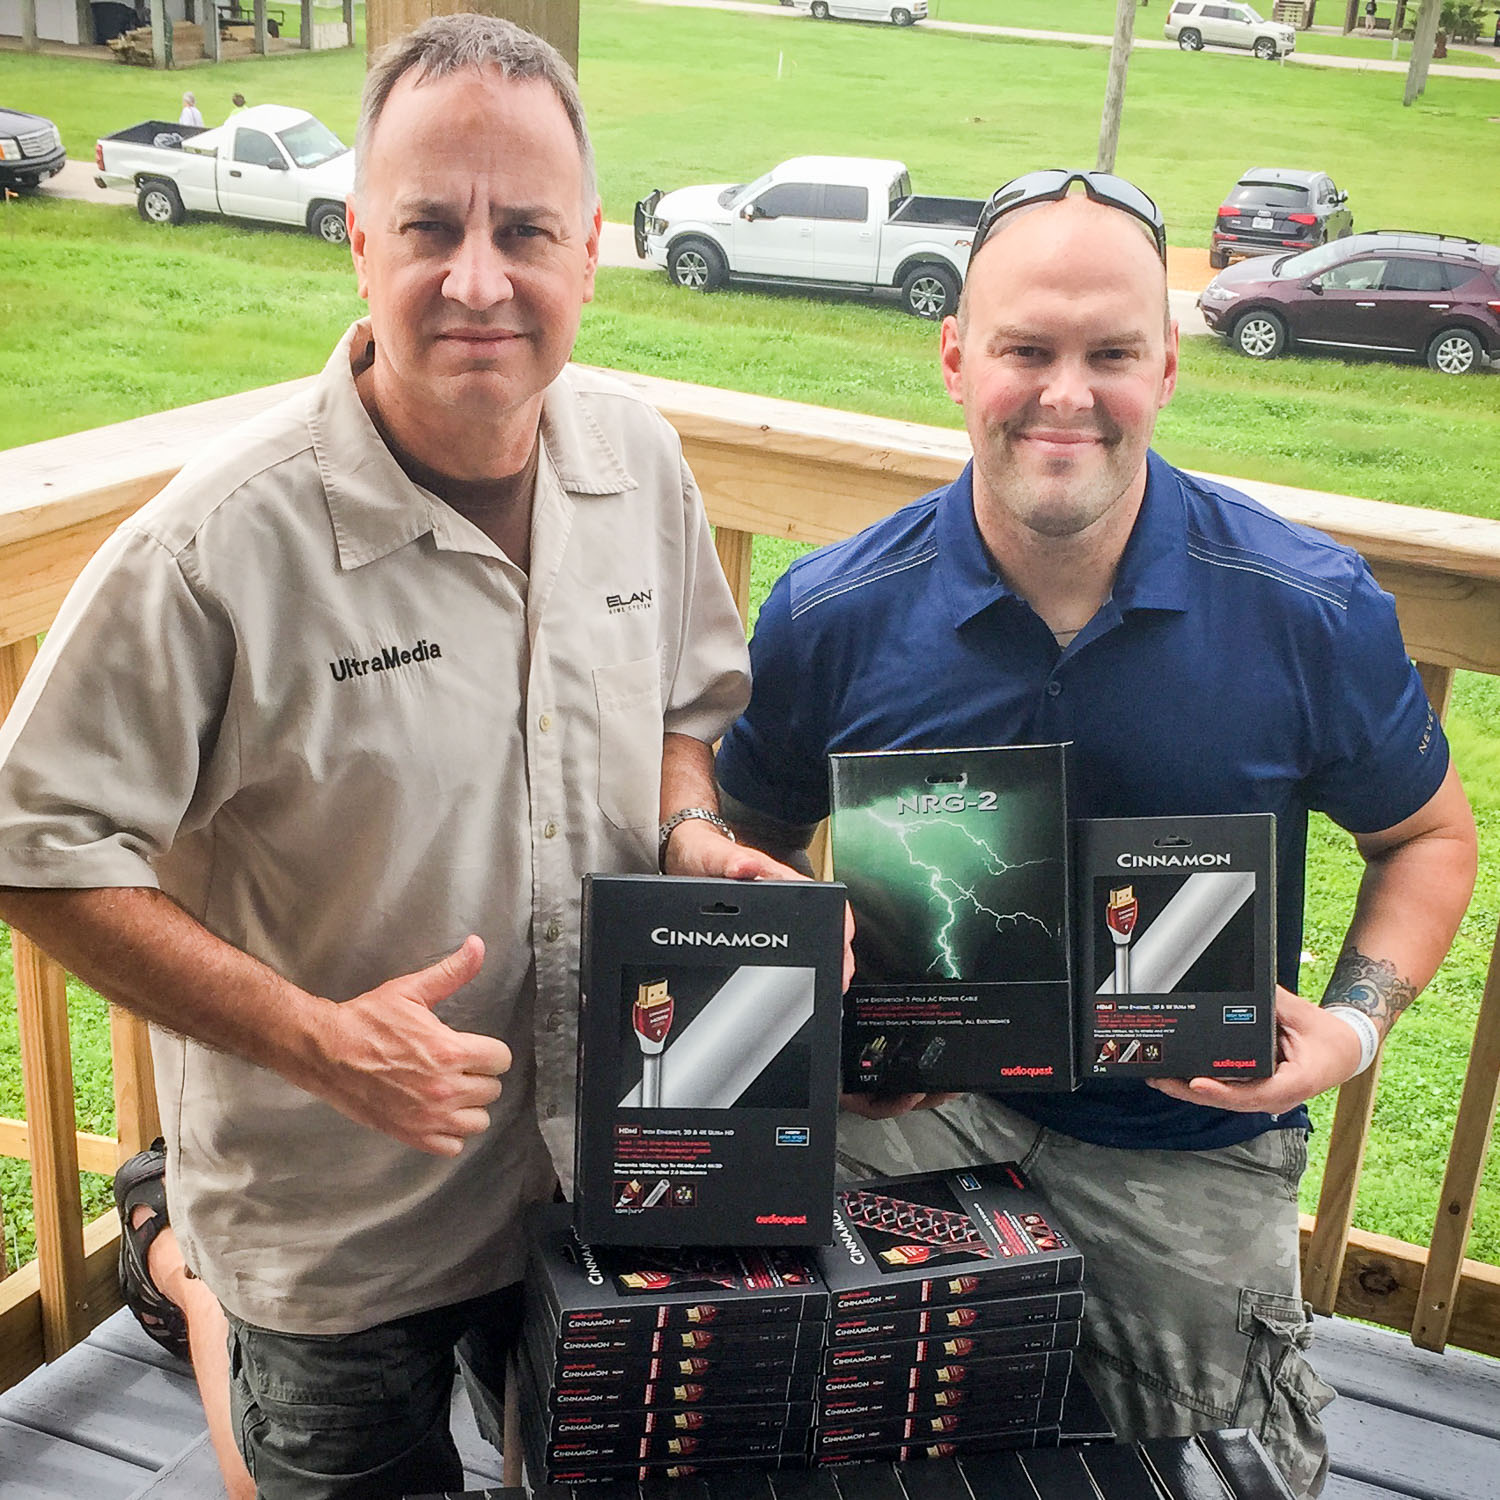 Pat and Luke install technology in Lone Survivor Retreat